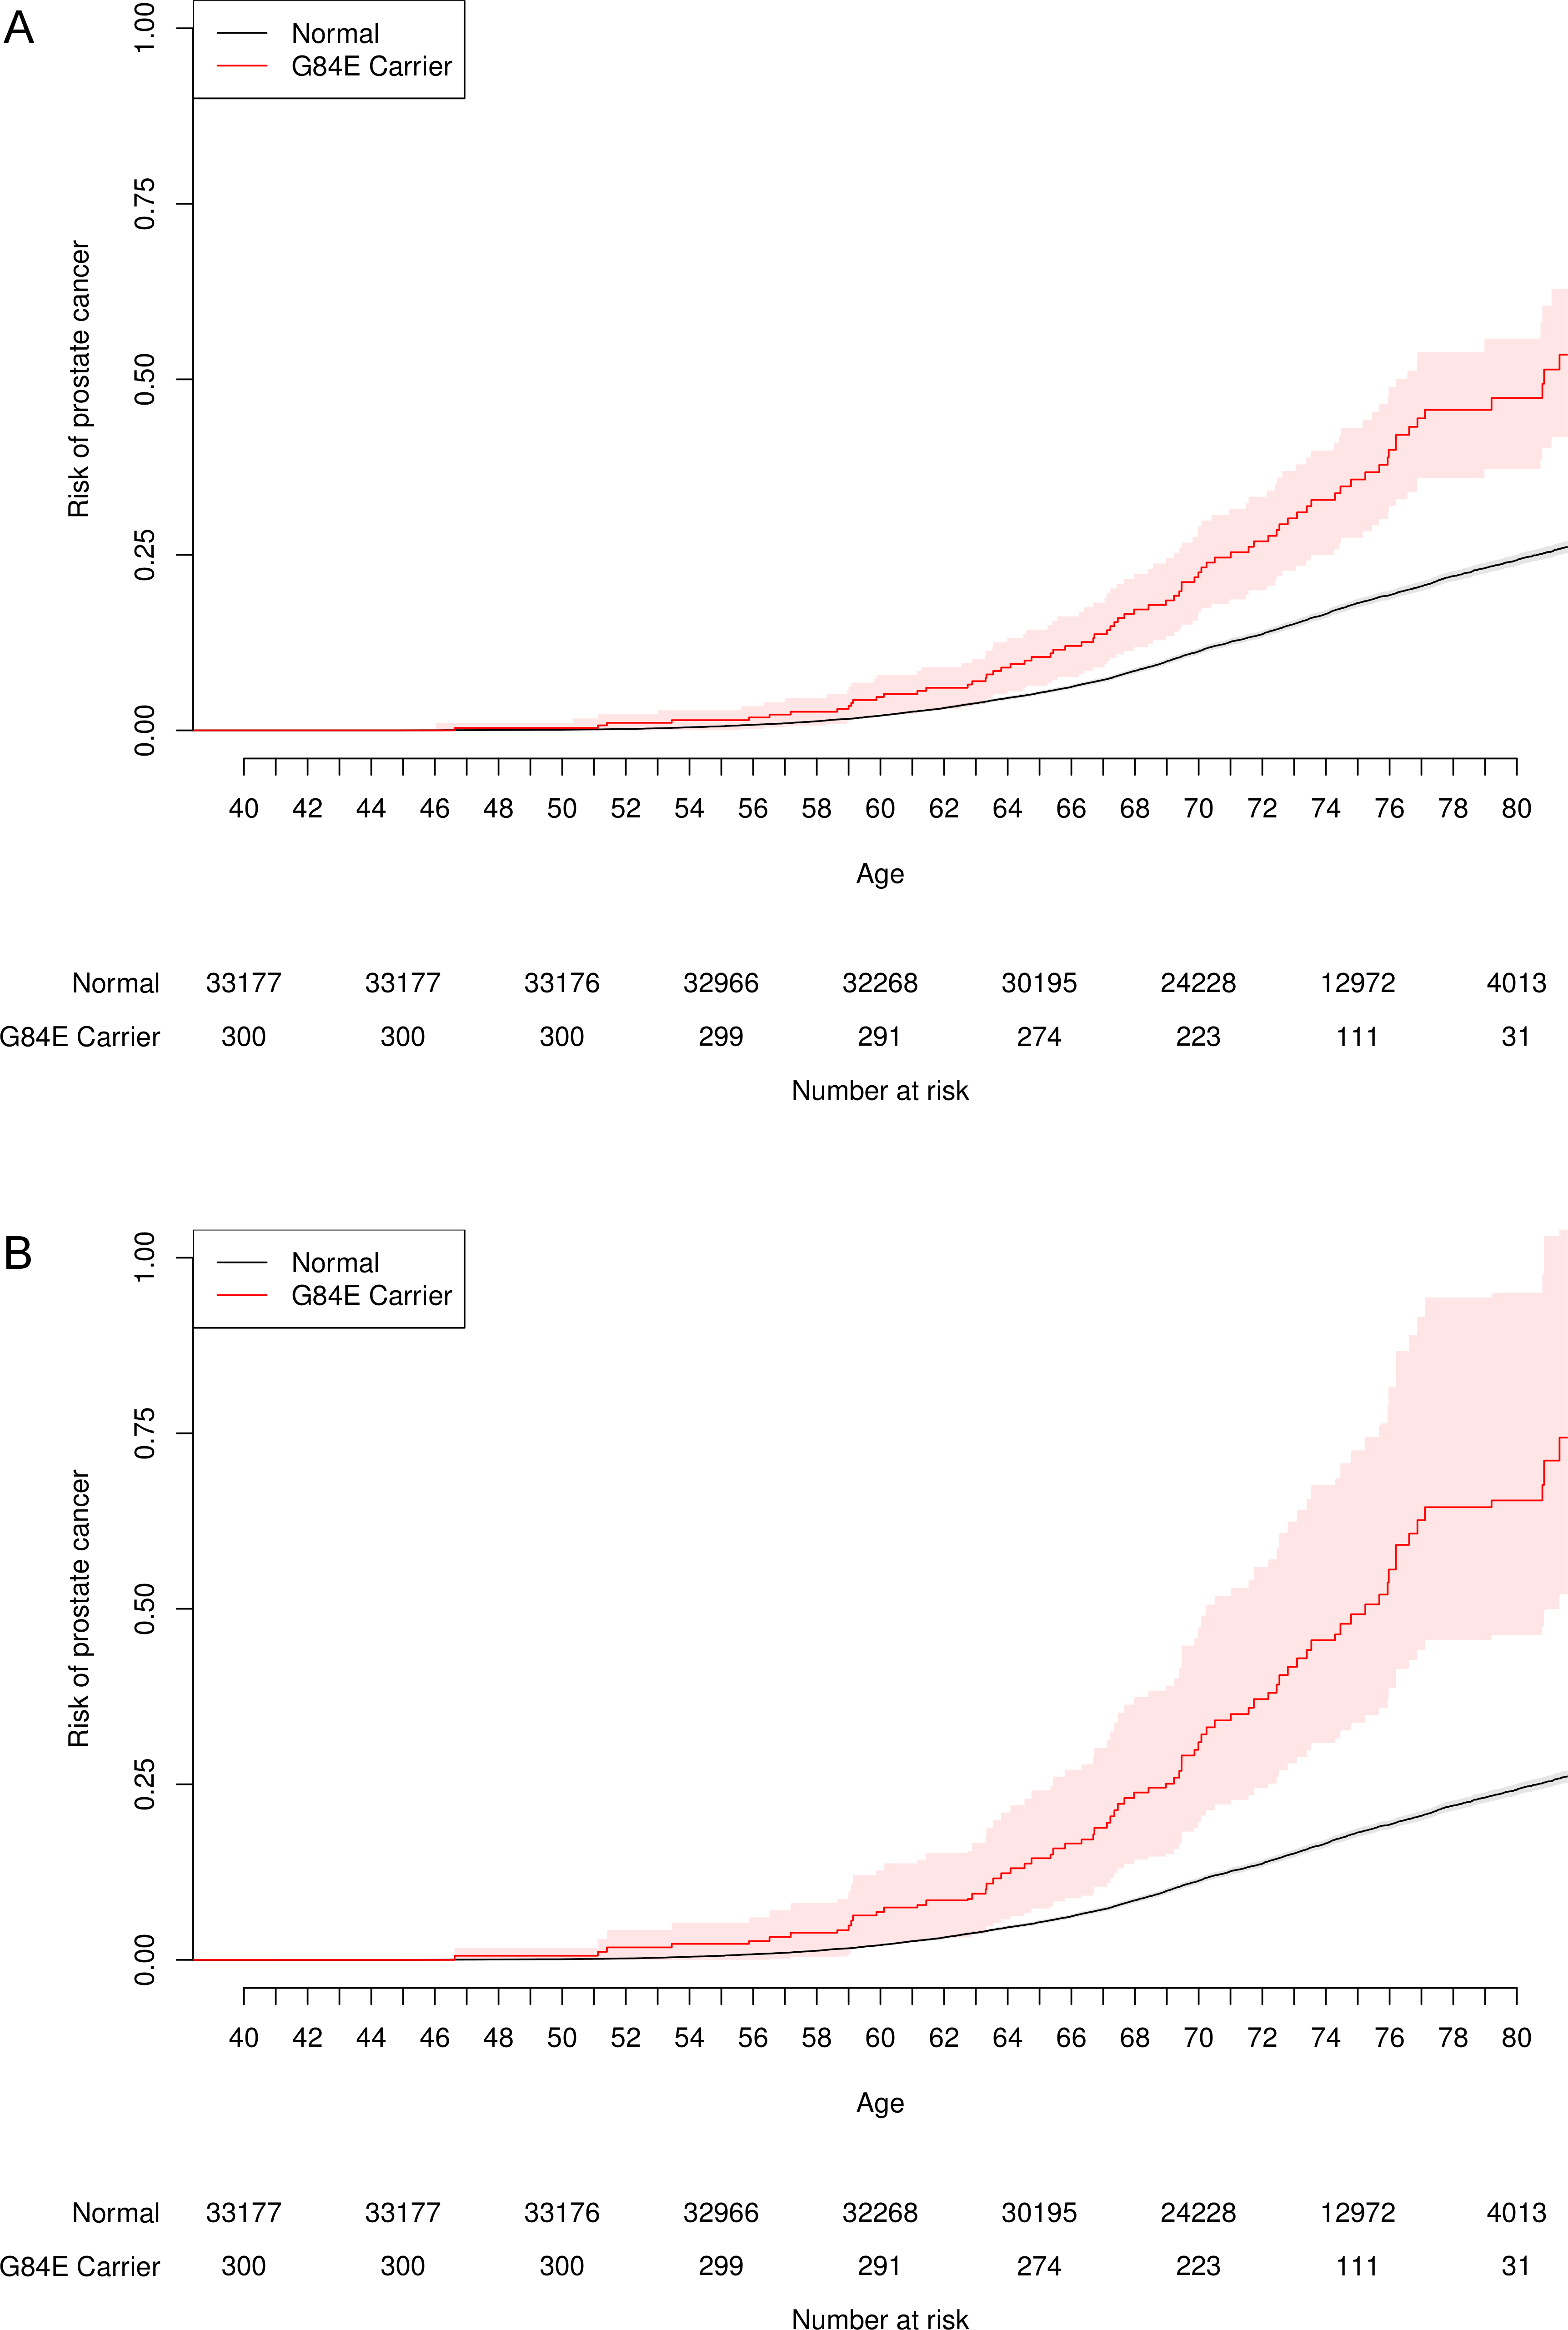 Age-specific risk of prostate cancer by <i>HOXB13</i> G84E mutation carrier status.